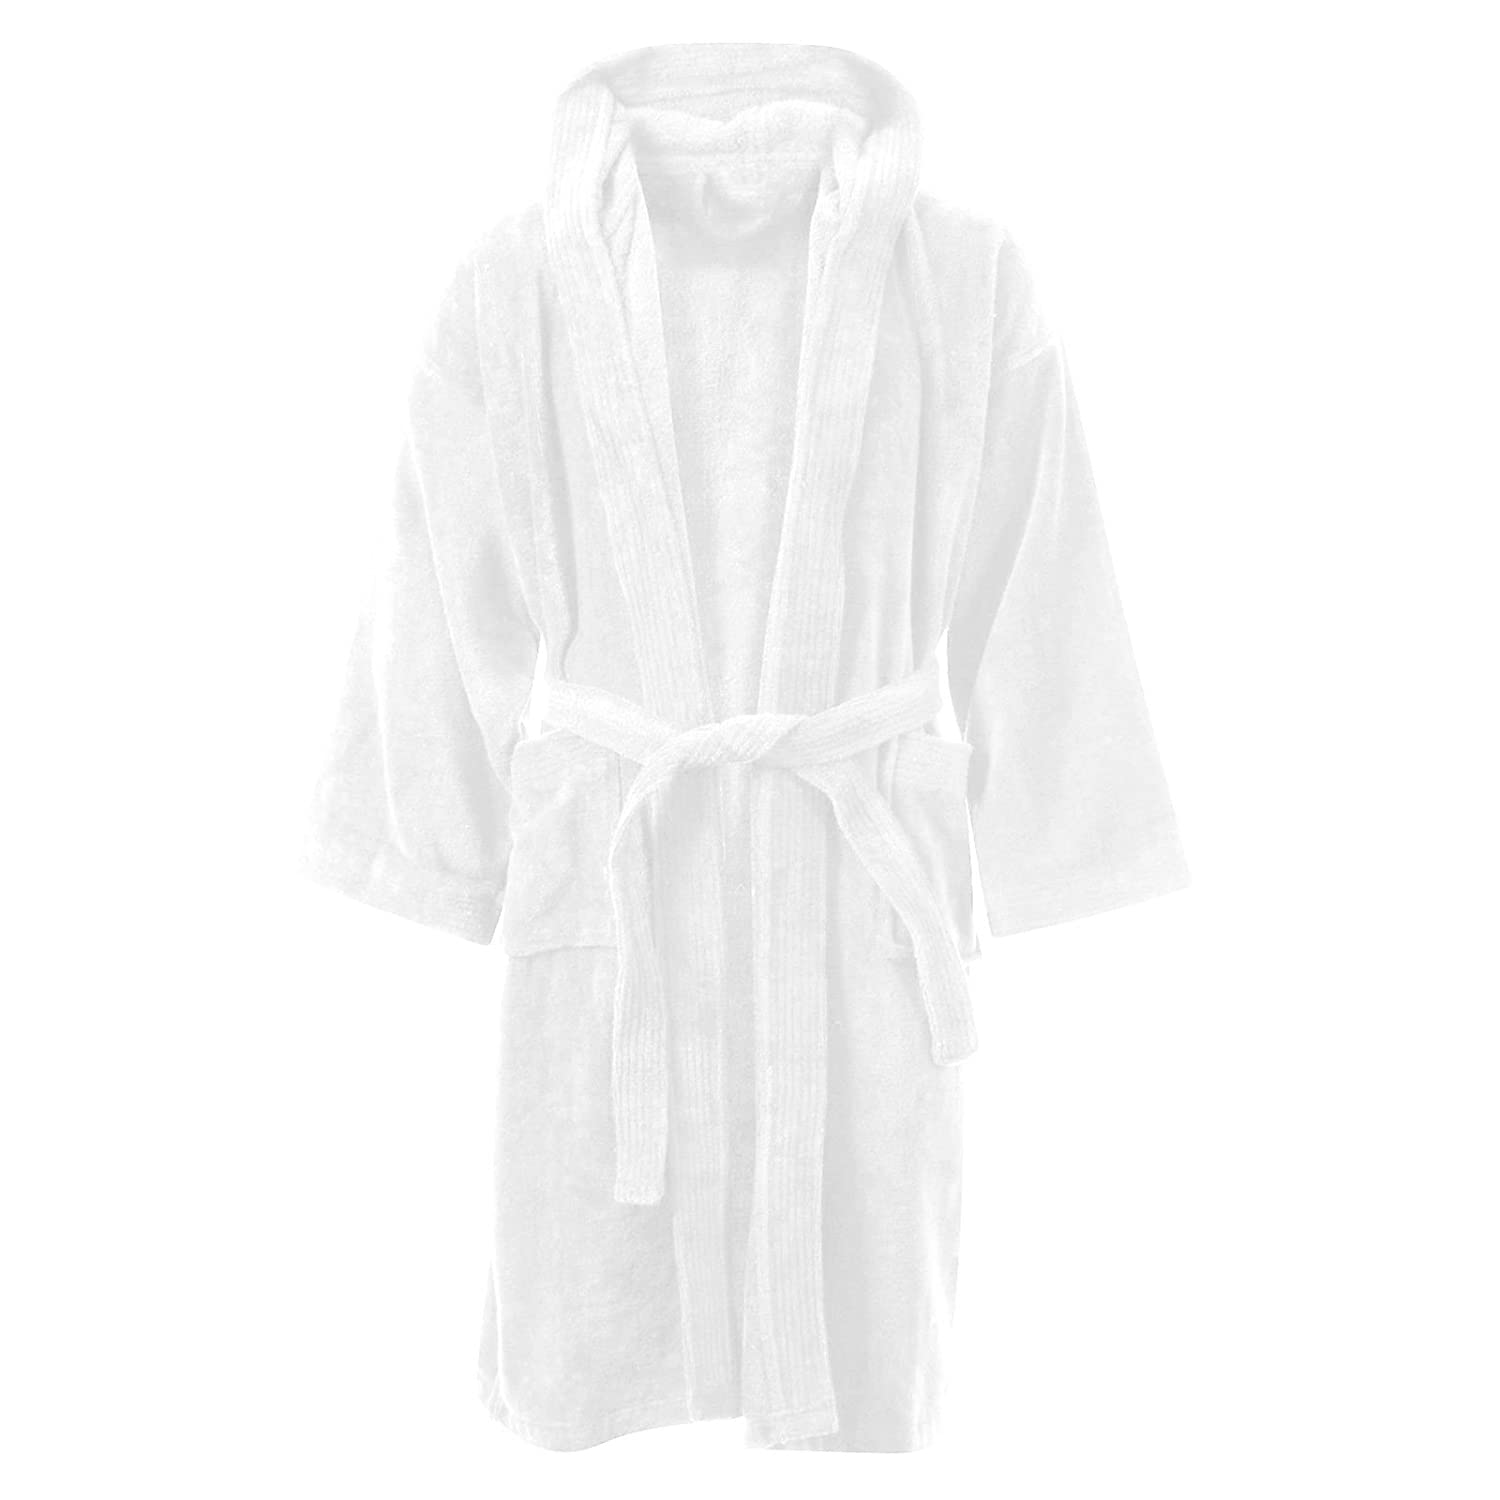 MyShoeStore Kids Boys Girls Bathrobe 100% Egyptian Cotton Luxury ...